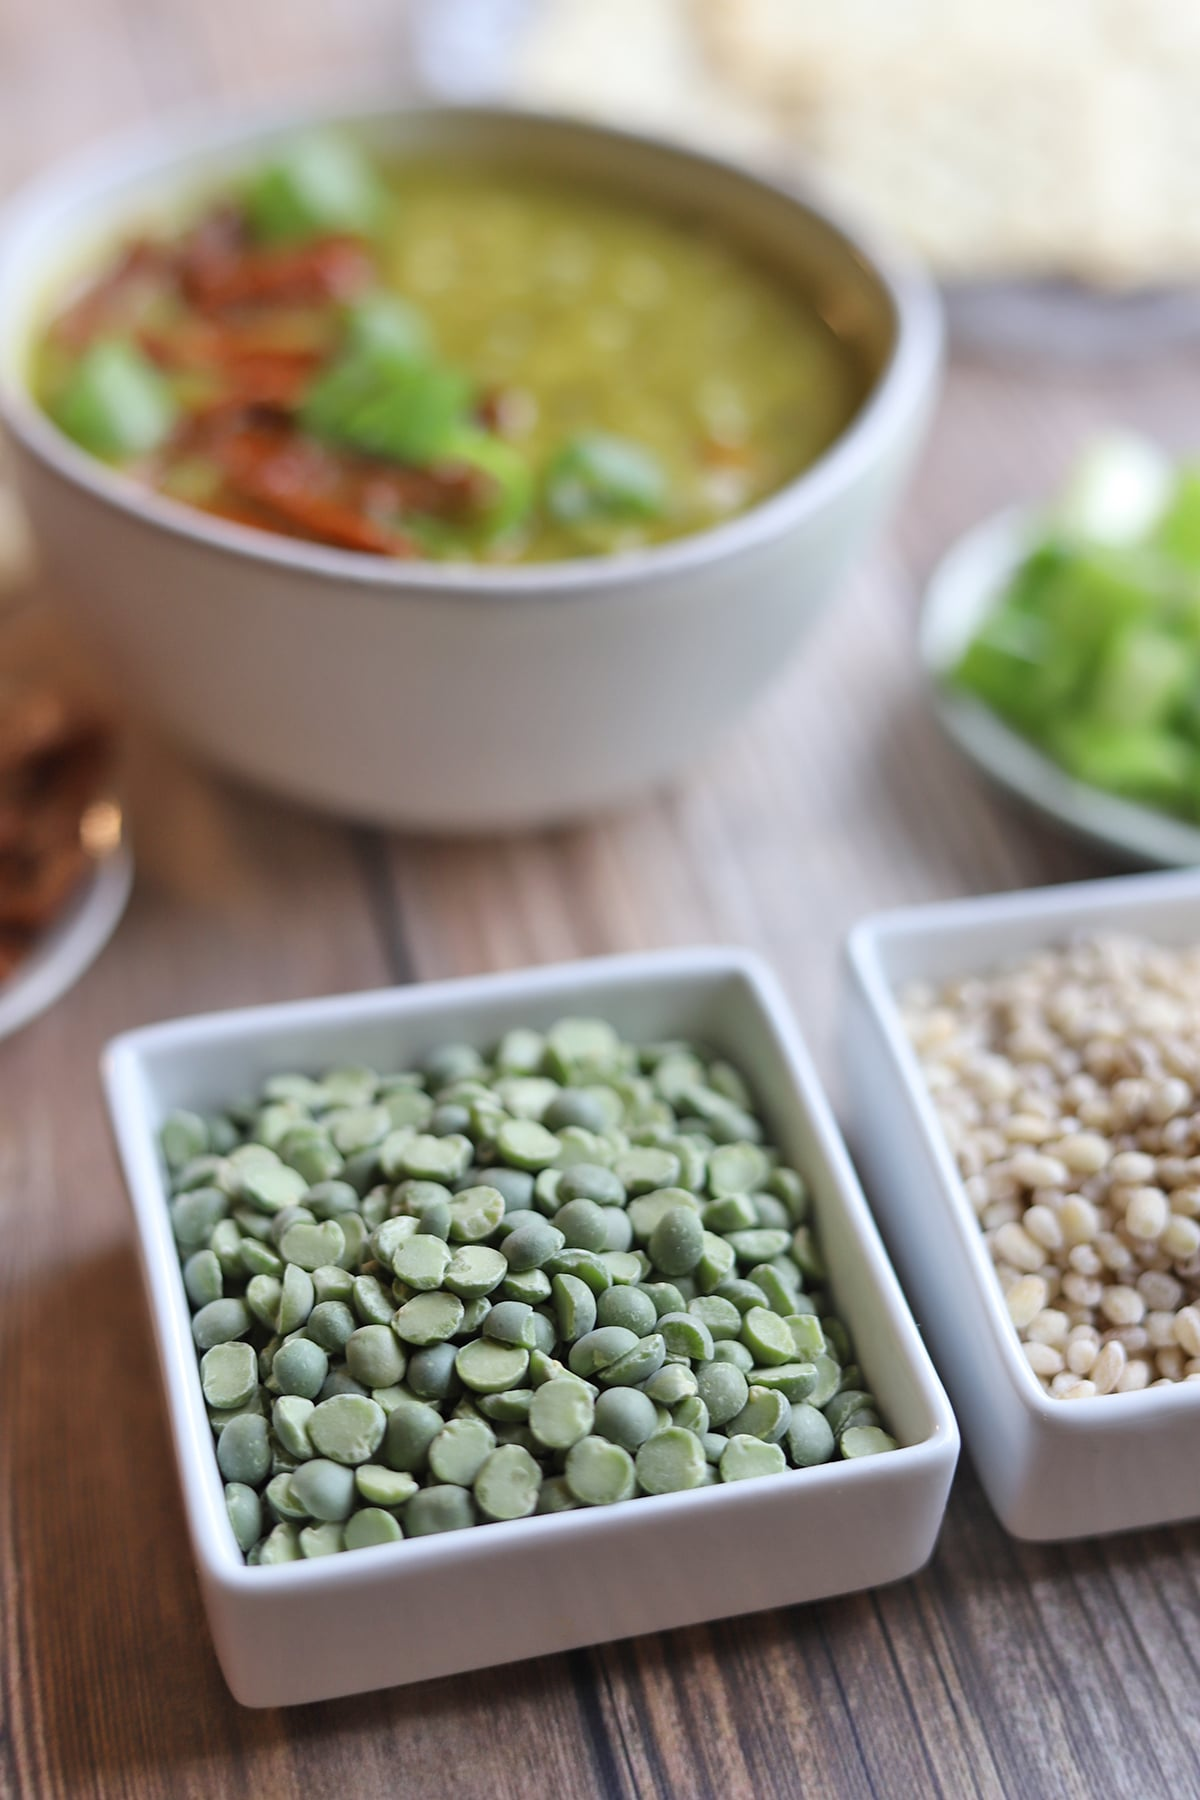 Dried split peas and barley in small bowls.